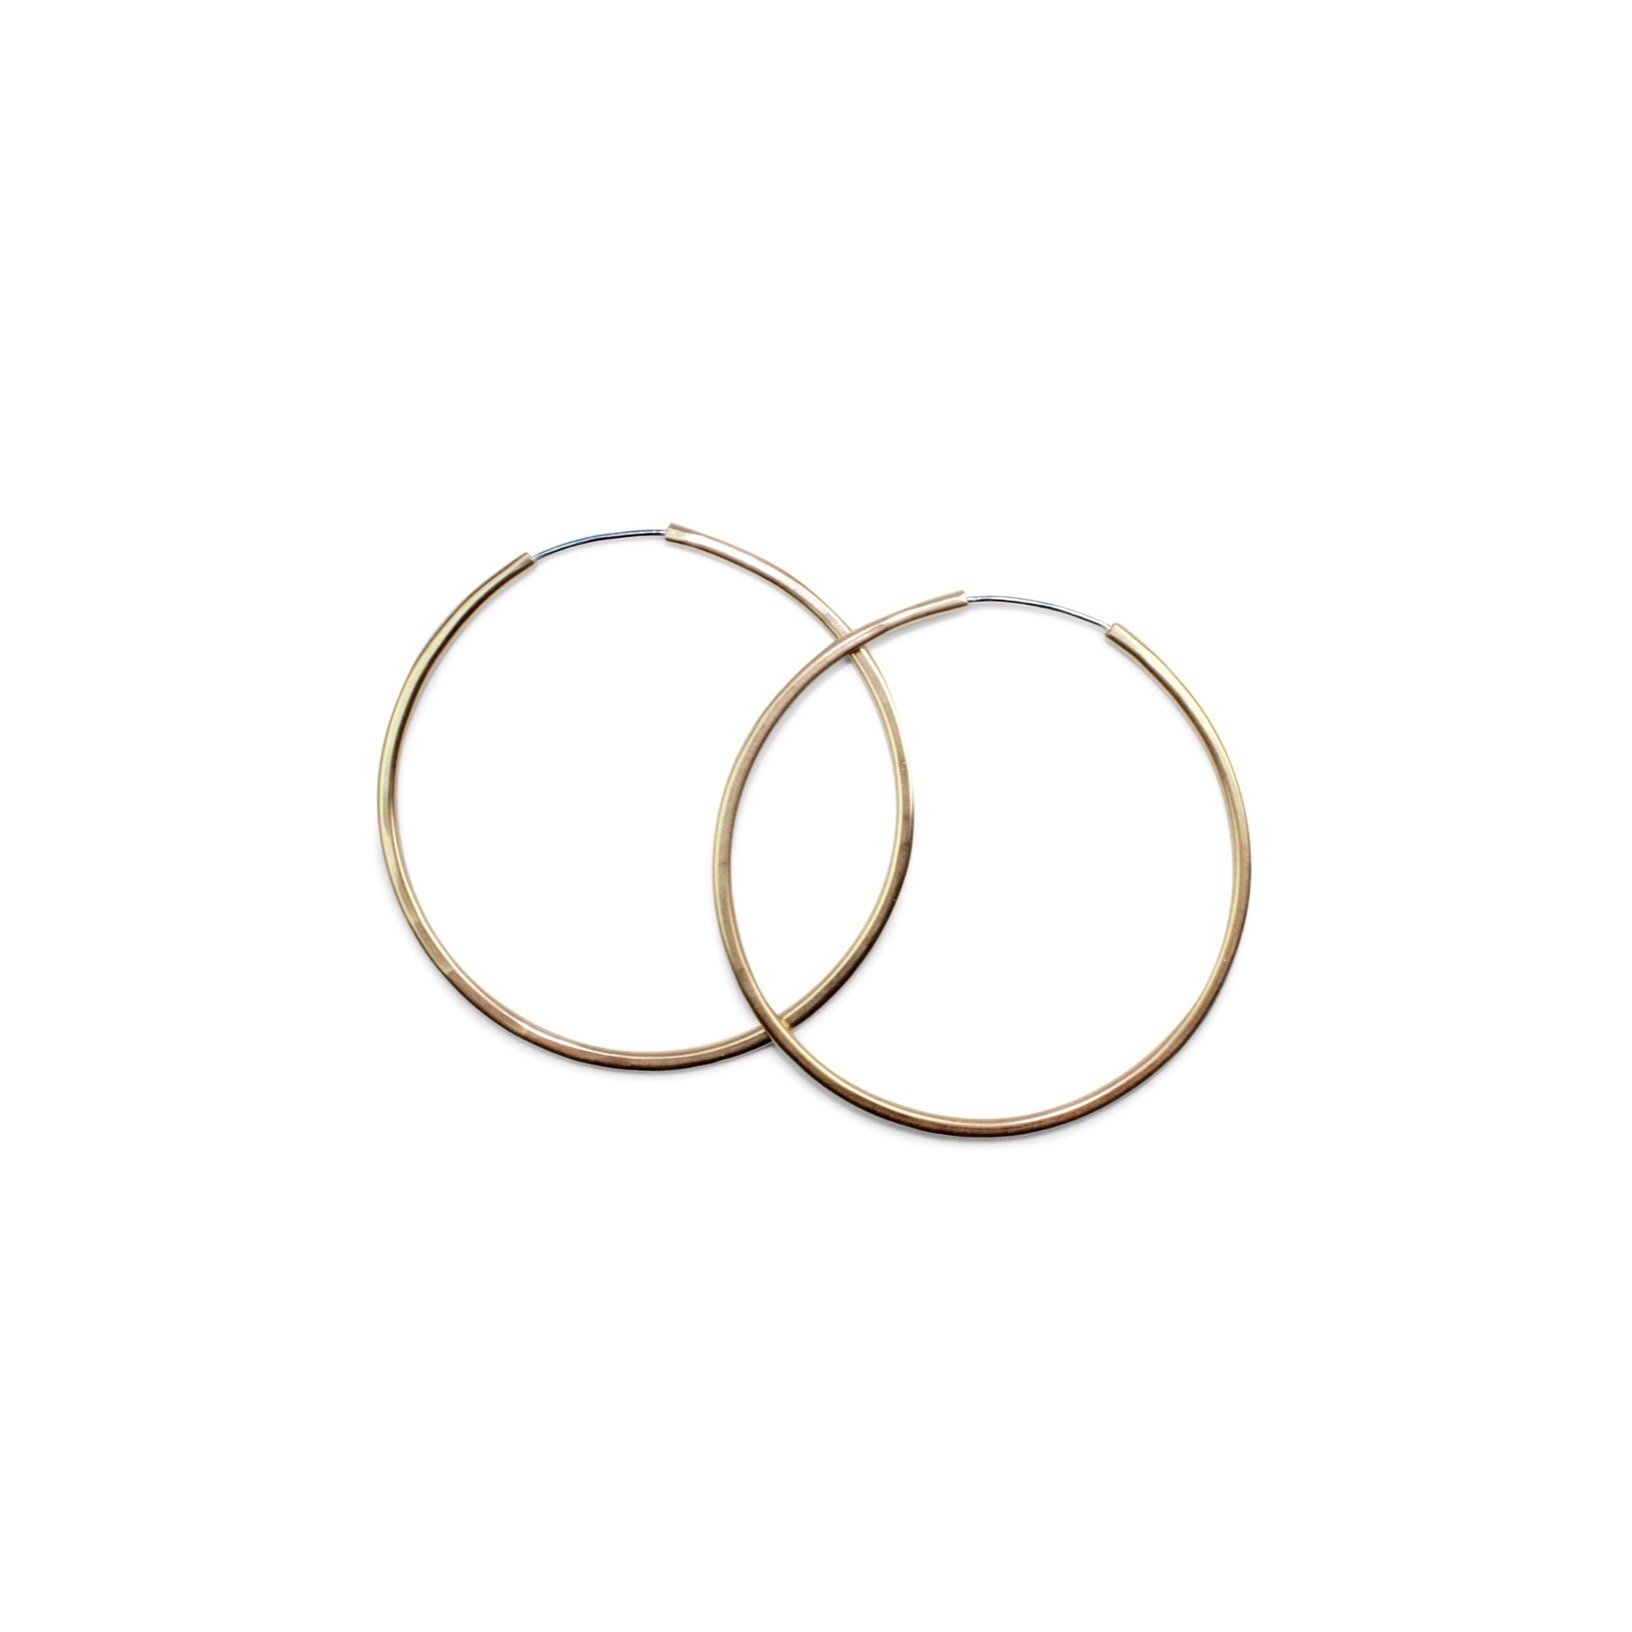 Amanda Hunt Gold Filled Continous Medium Hoops